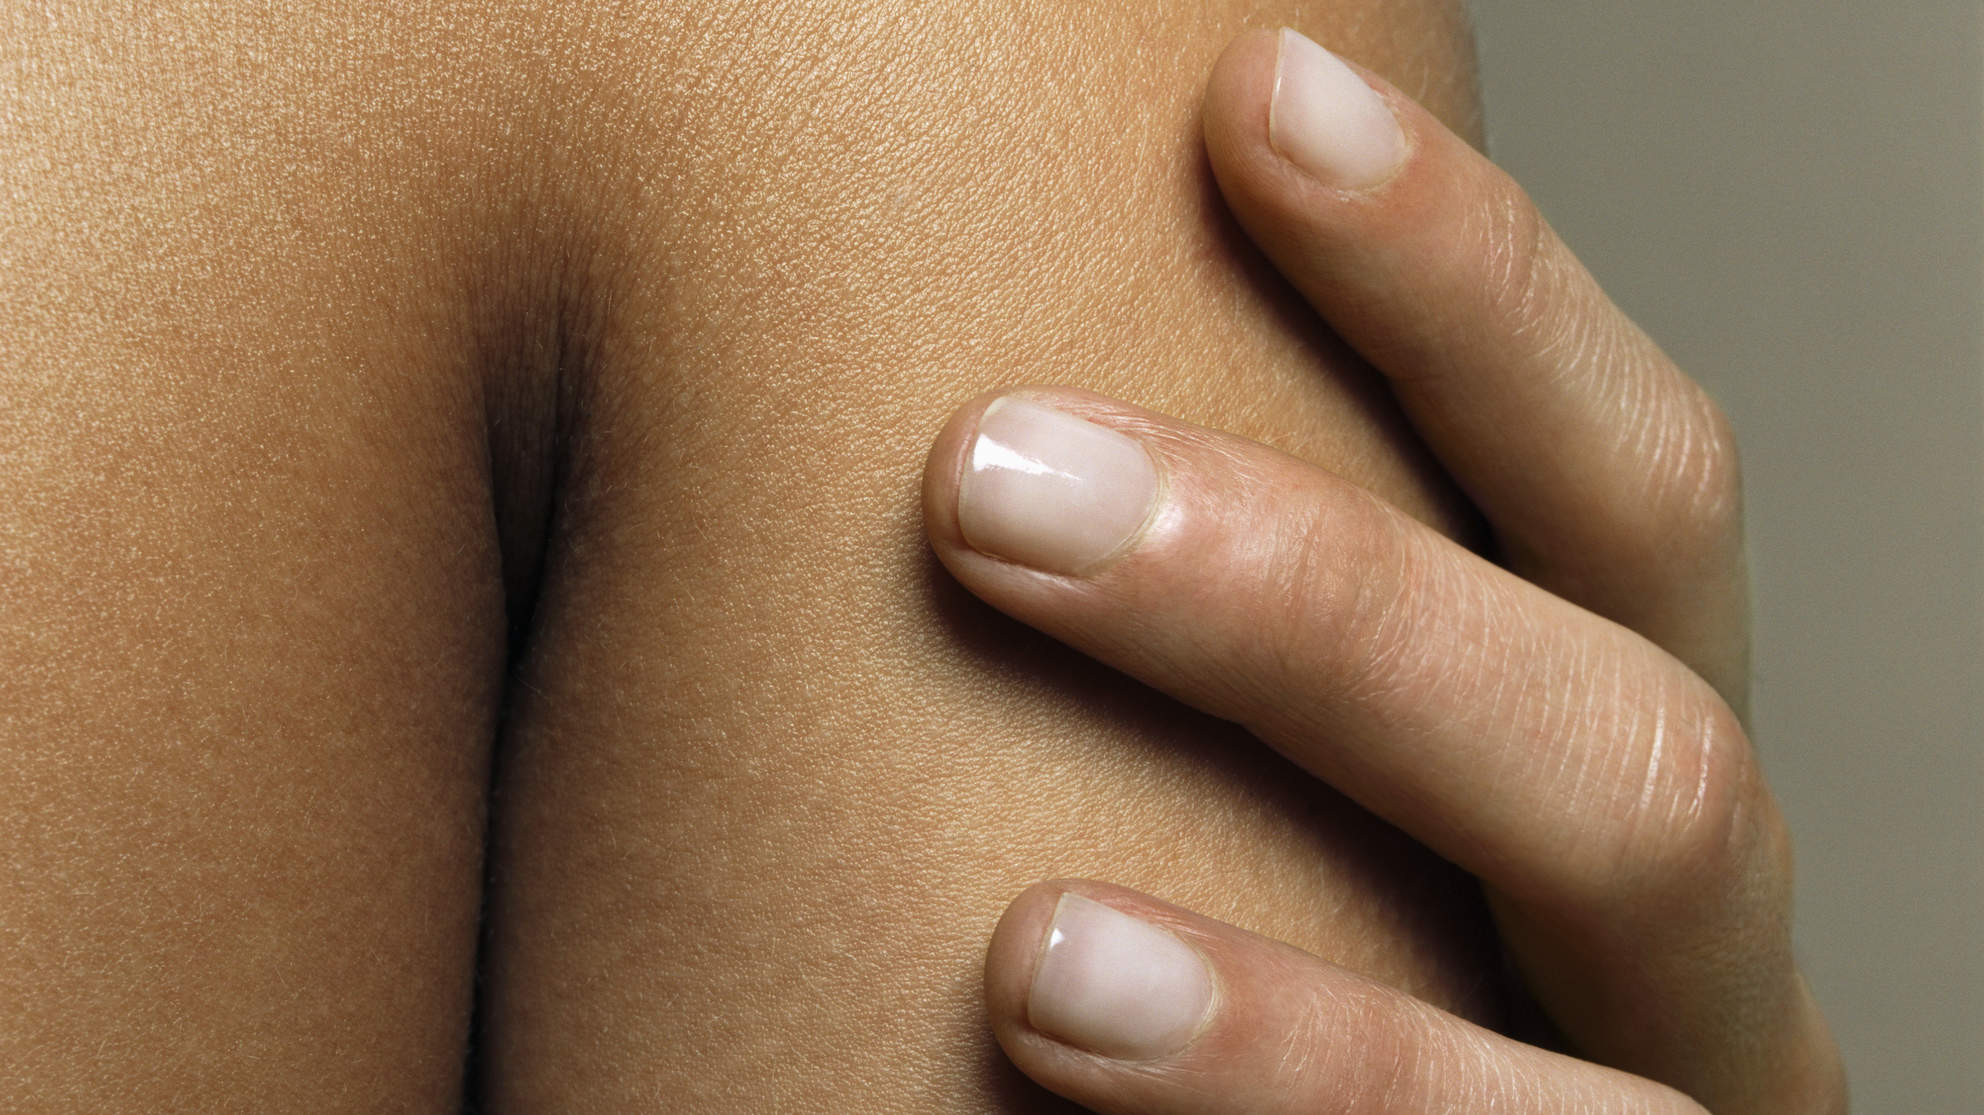 Skin Conditions: Symptoms, Treatments, Diagnosis - Health